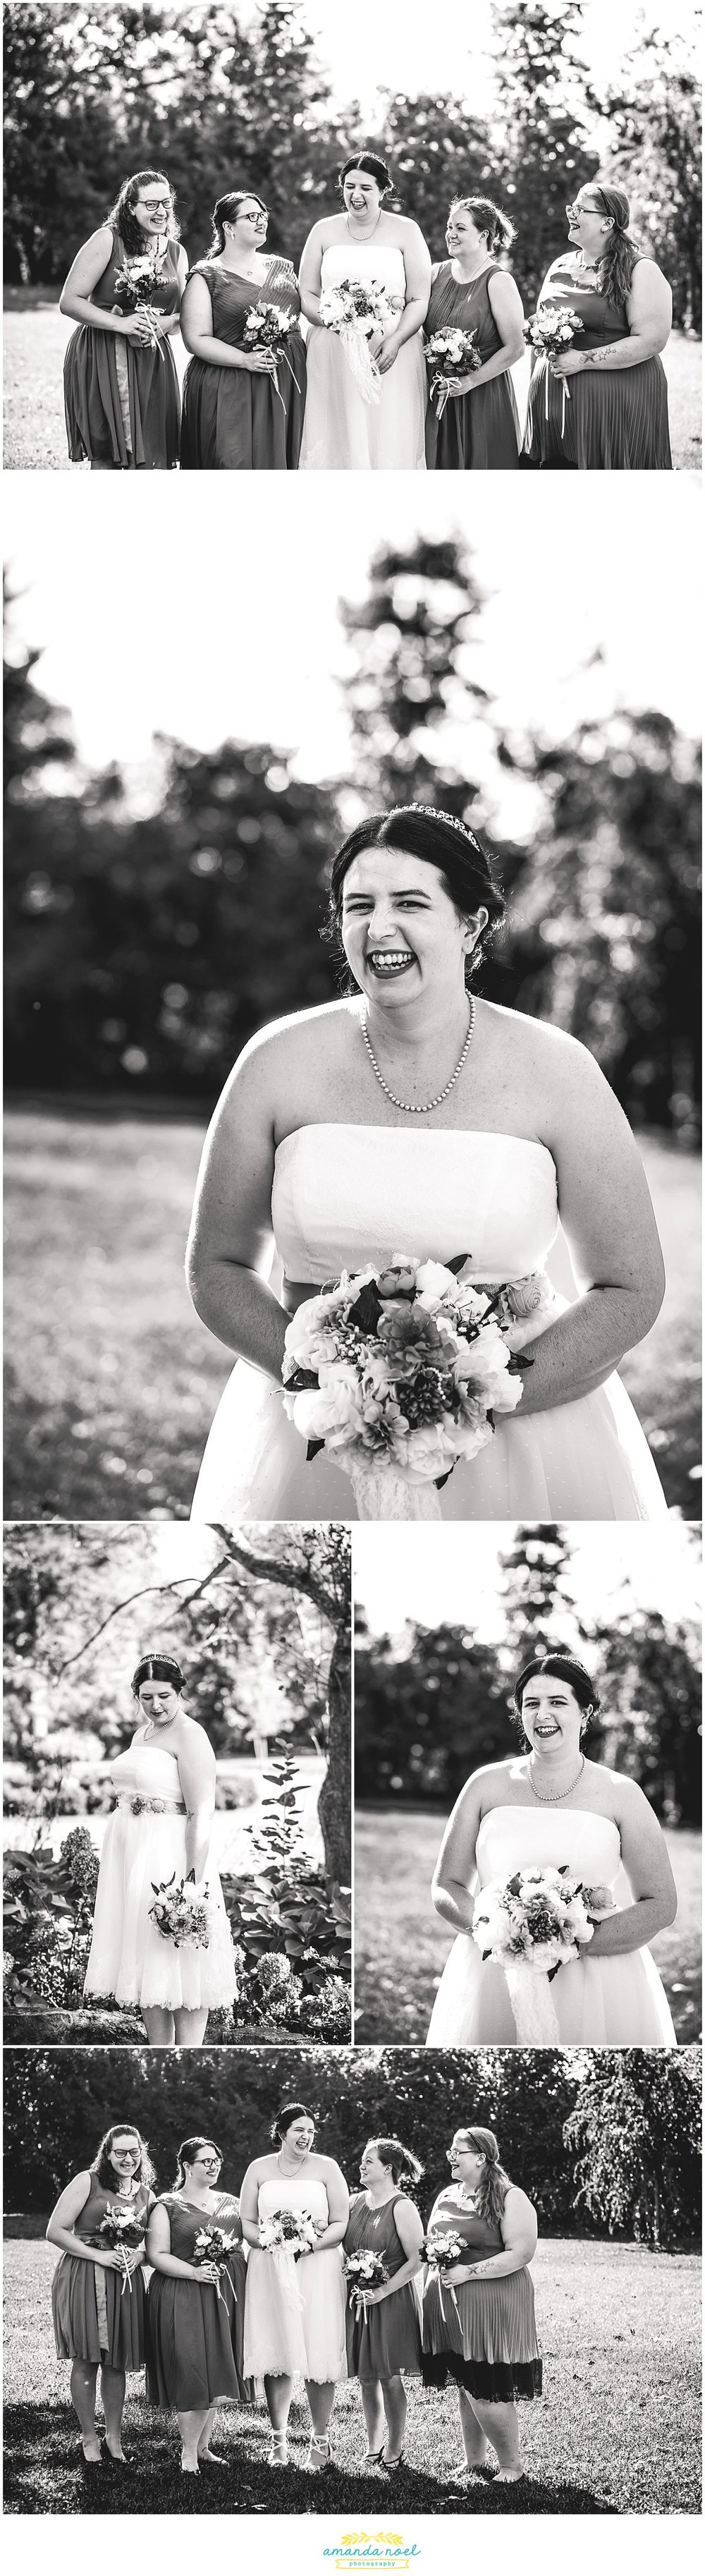 Dayton OH Wedding Photographer | Amanda Noel Photography